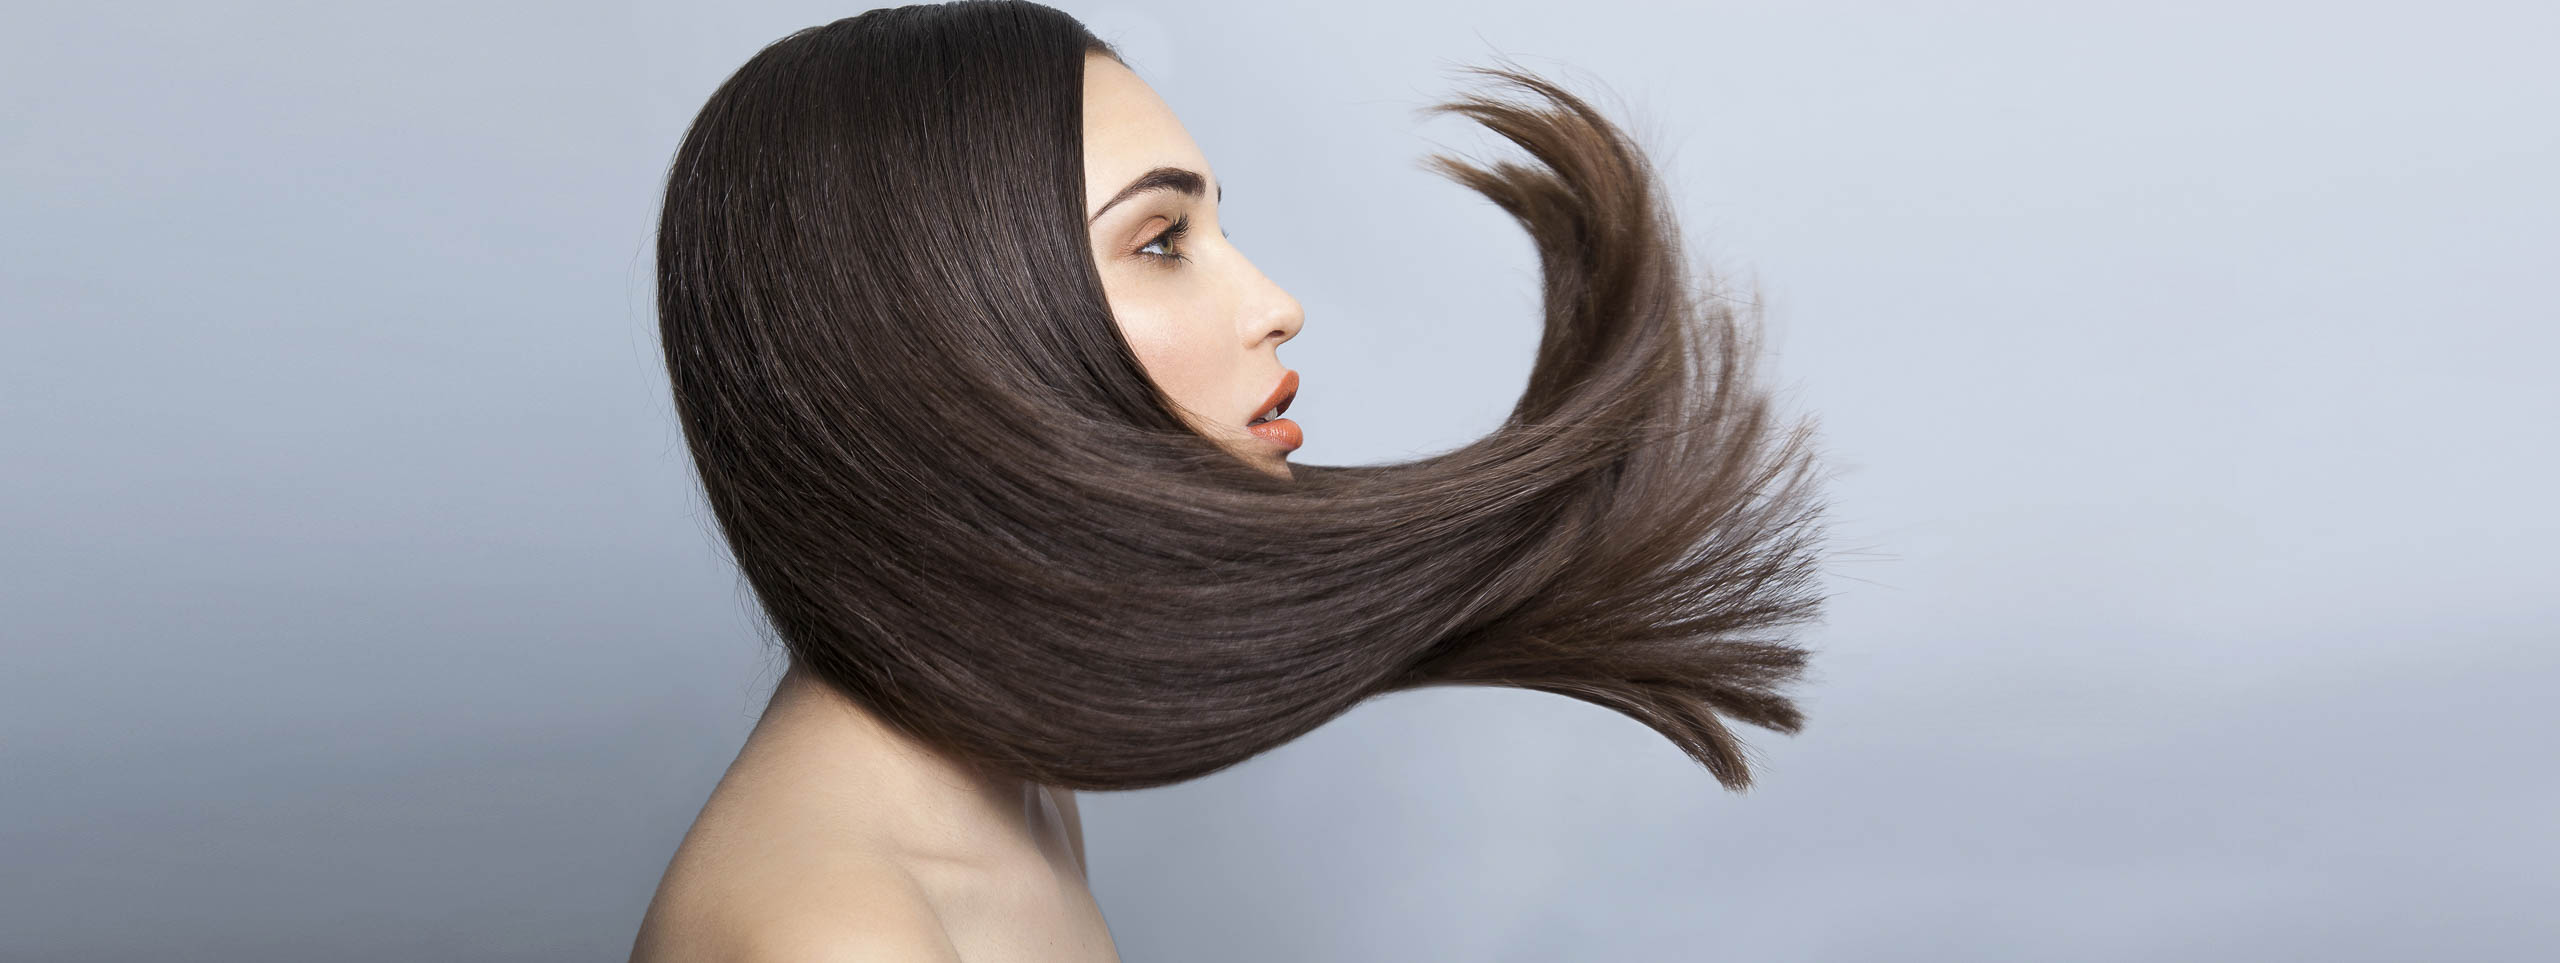 Hair Myth Regularly Trimming The Ends Stimulates Hair Growth